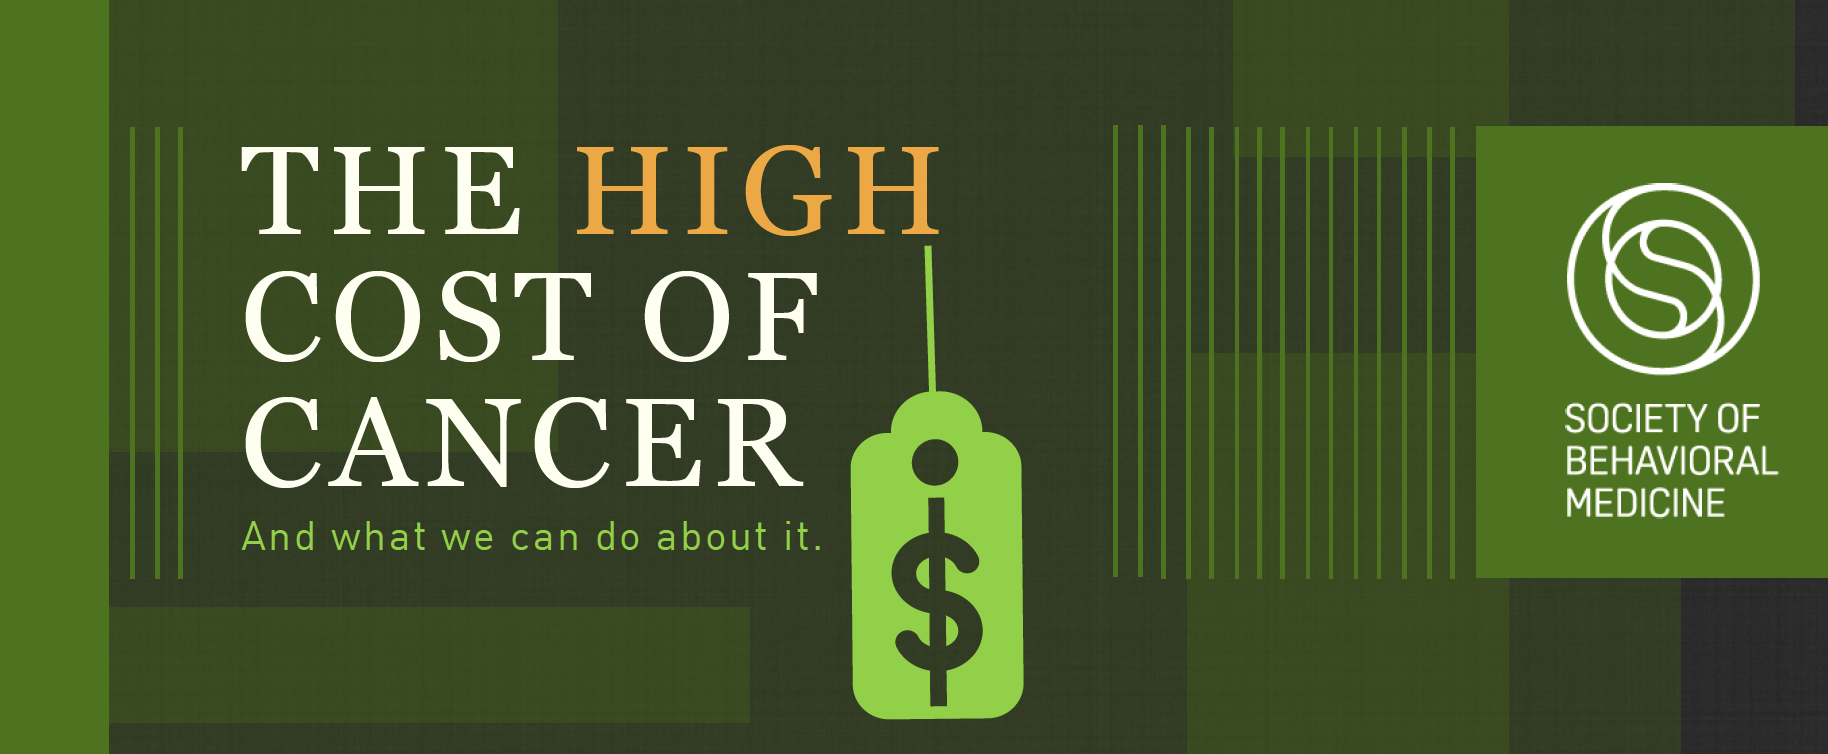 The High Cost Of Cancer- And what we can do about it. Society of Behavioral Medicine.